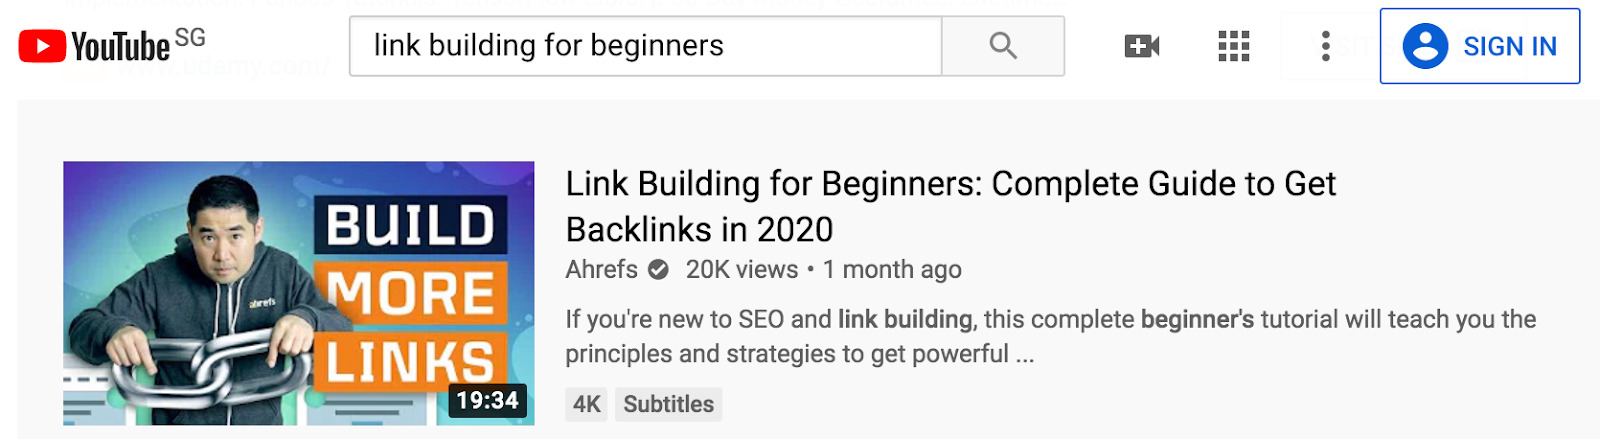 youtube link building ahrefs